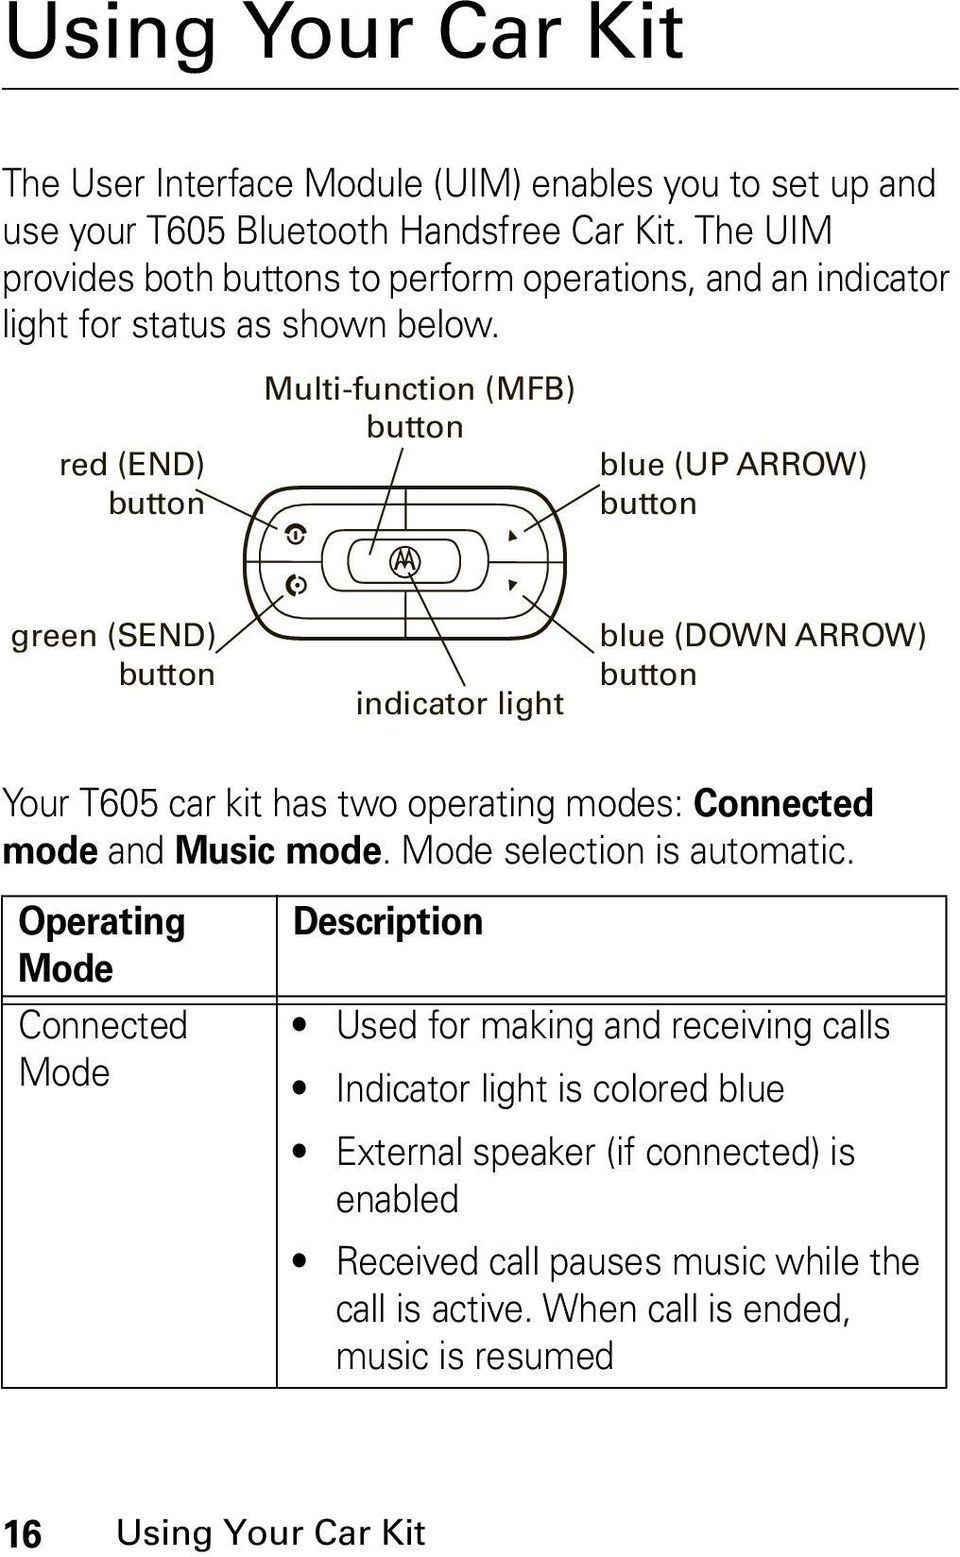 red (END) button Multi-function (MFB) button blue (UP ARROW) button green (SEND) button indicator light blue (DOWN ARROW) button Your T605 car kit has two operating modes: